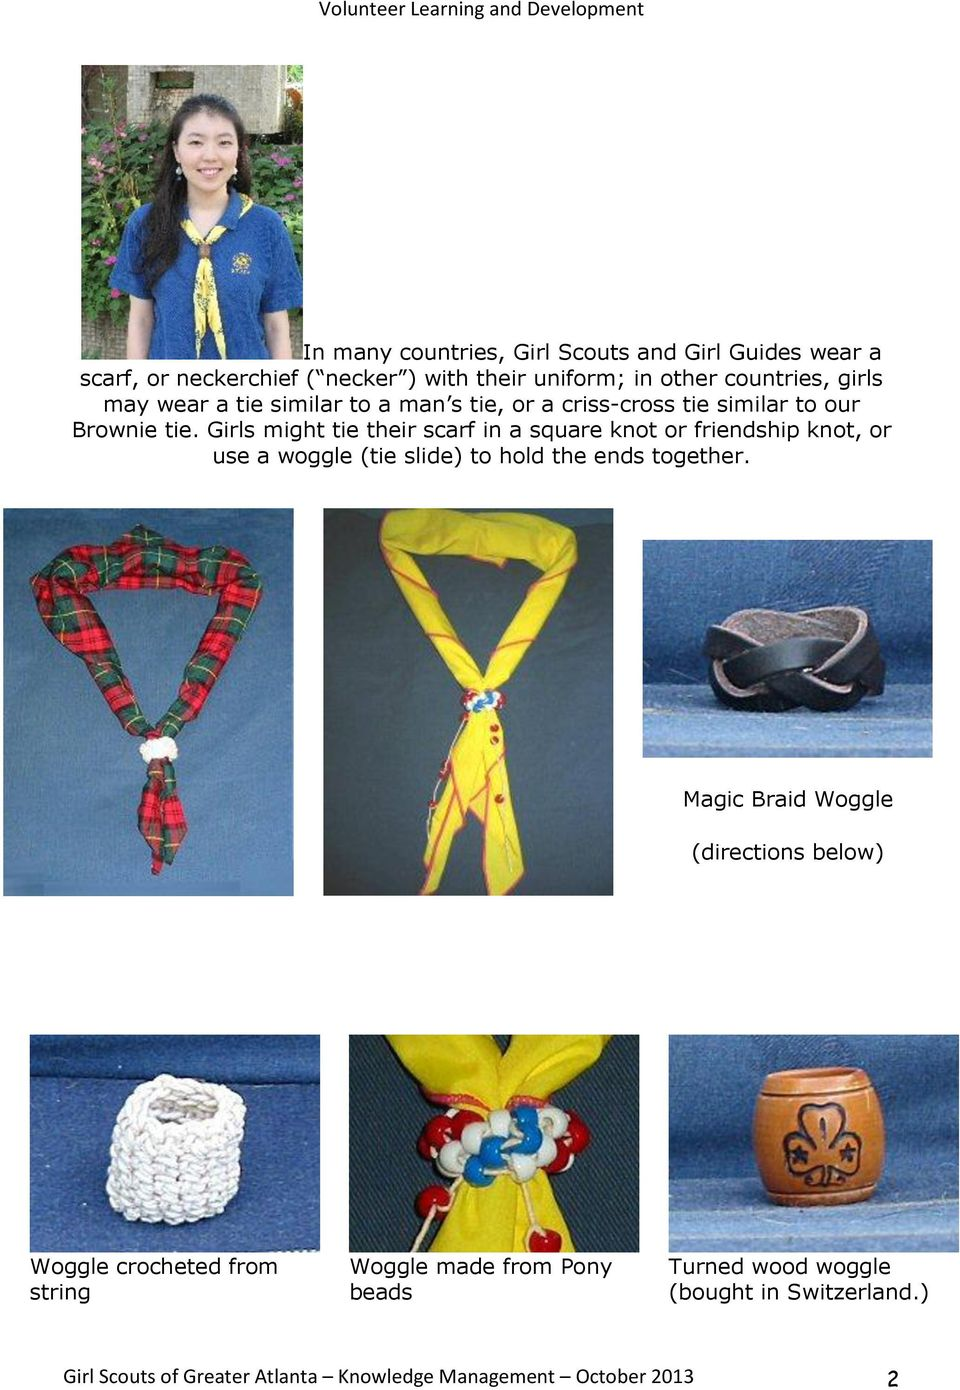 Girls might tie their scarf in a square knot or friendship knot, or use a woggle (tie slide) to hold the ends together.